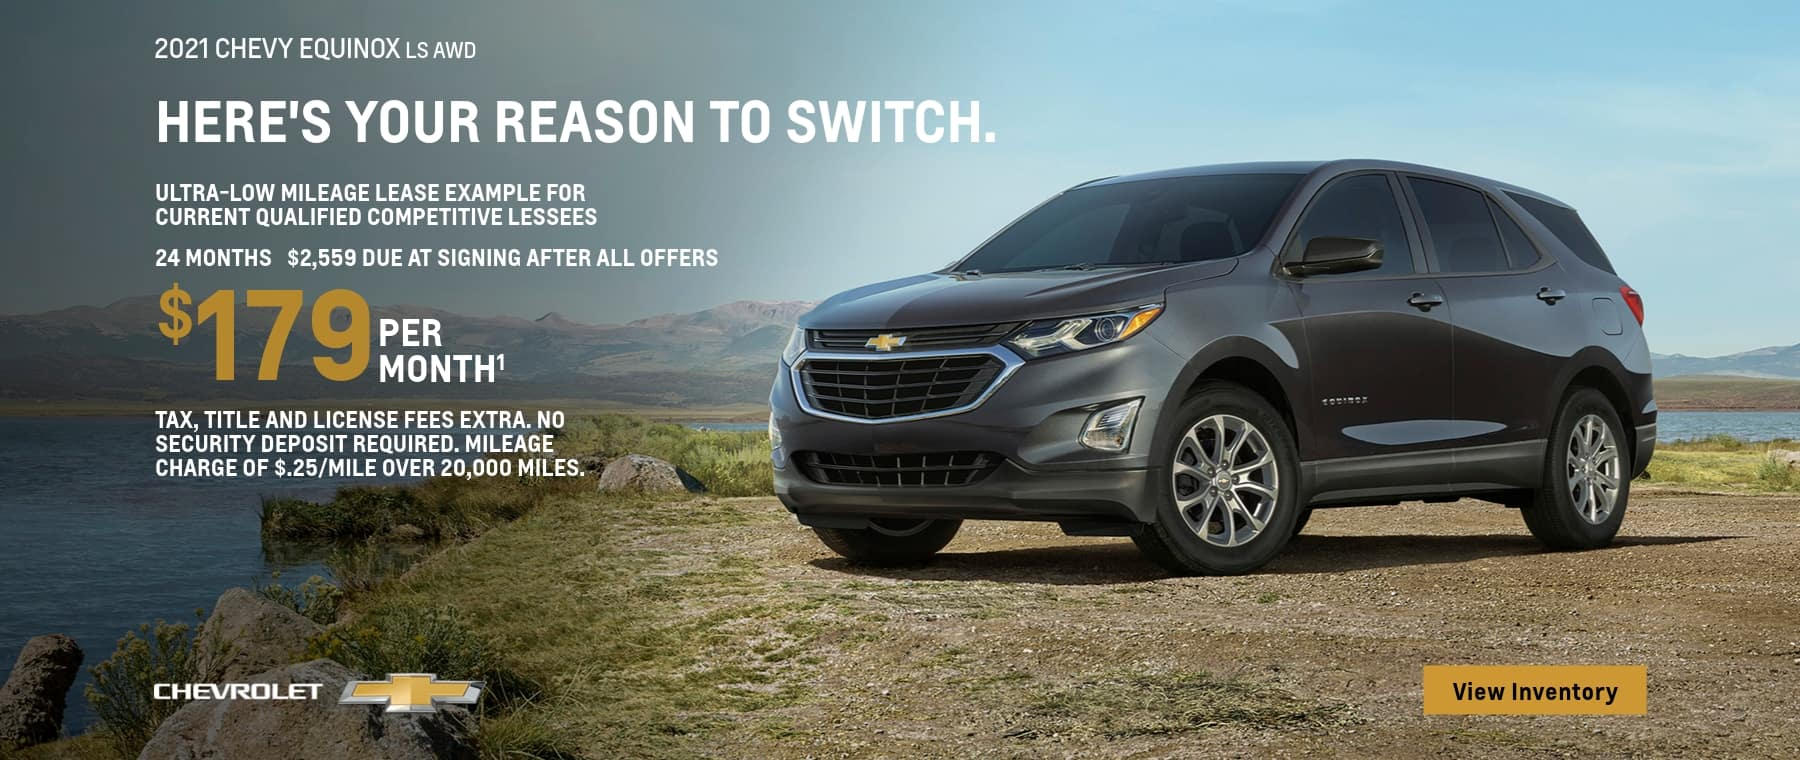 2021 Chevy Equinox LS AWD. Ultra low mileage lease example for current qualified competitive lessees. $179 per month for 24 months. $2,559 due at signing after all offers.